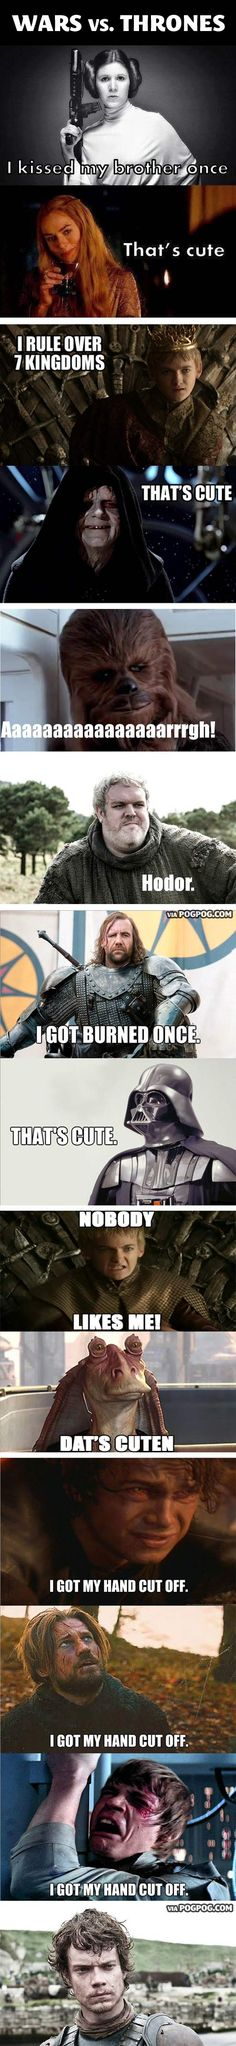 Star Wars vs. Game of Thrones… last one totally cracked me up! Its so wrong but so funny